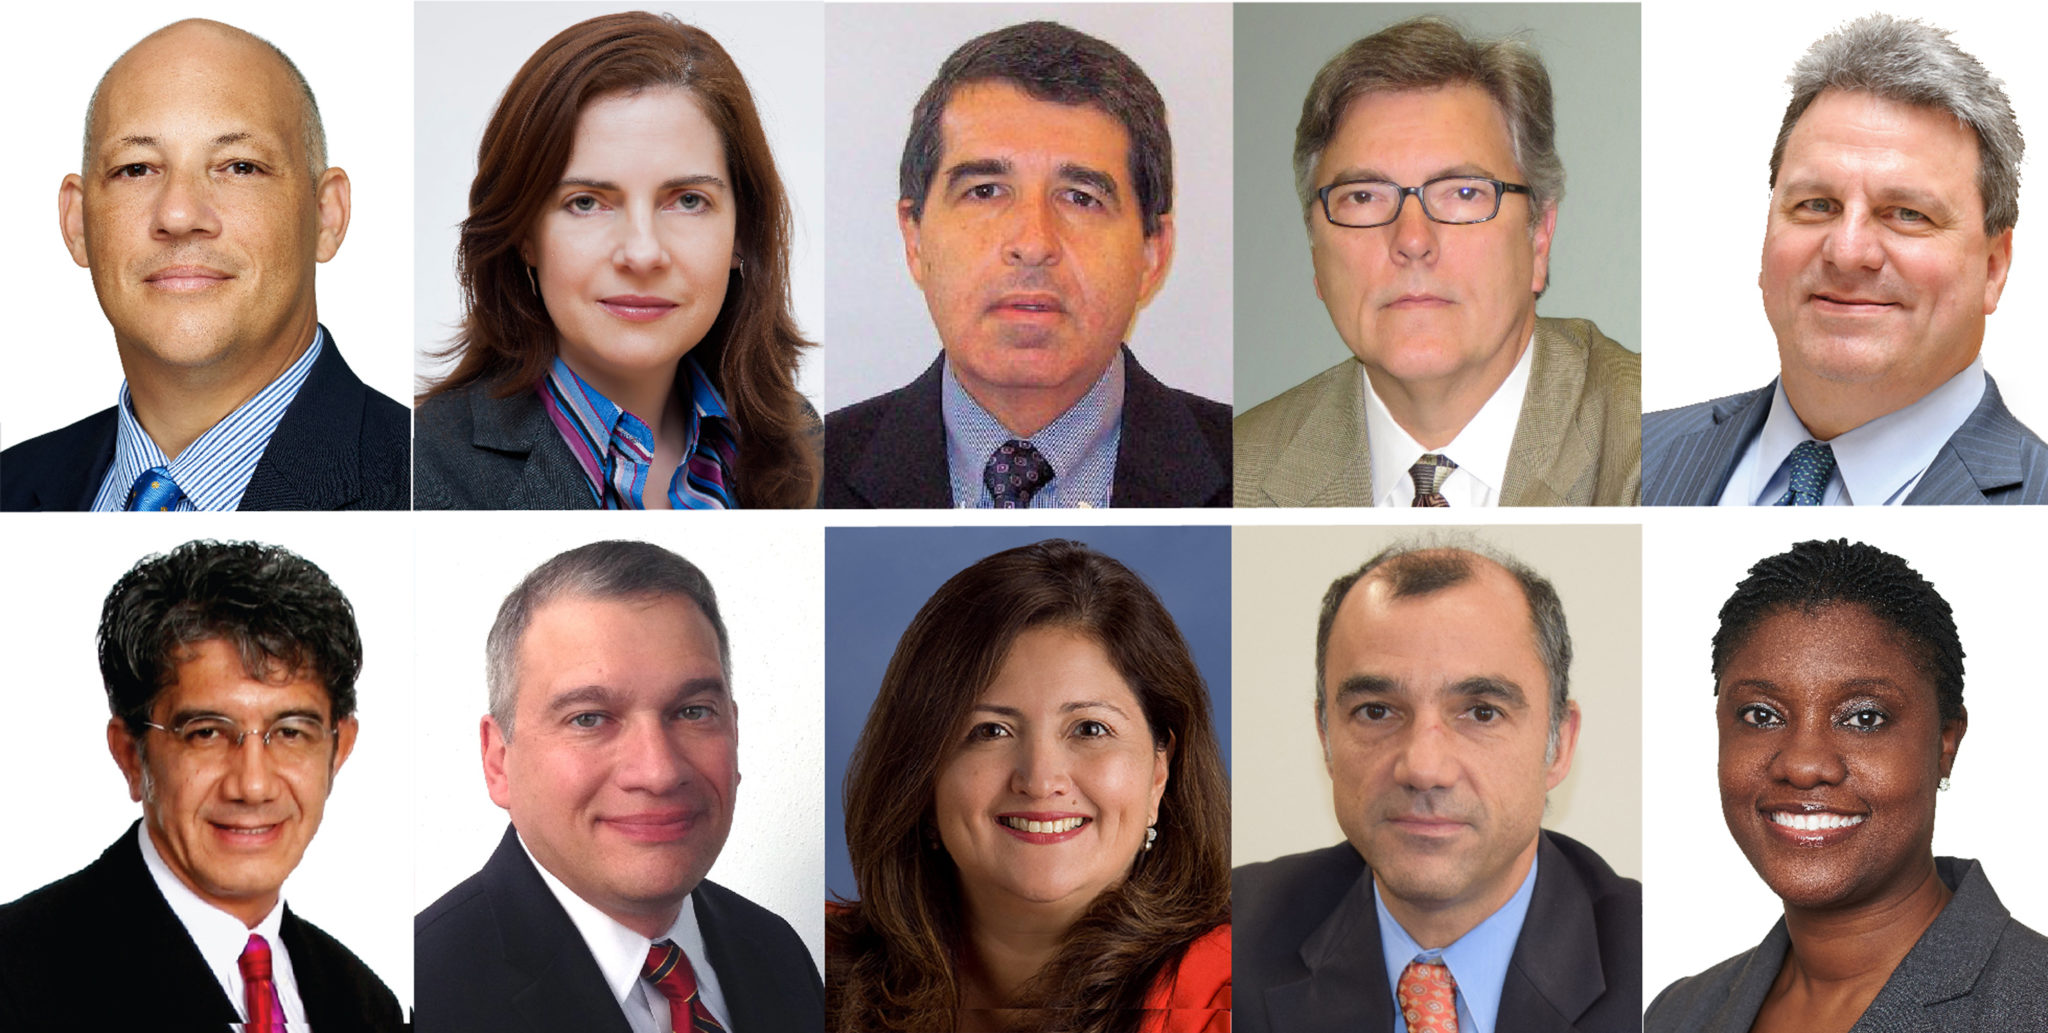 Top risk-industry speakers scheduled for ALARYS 2016